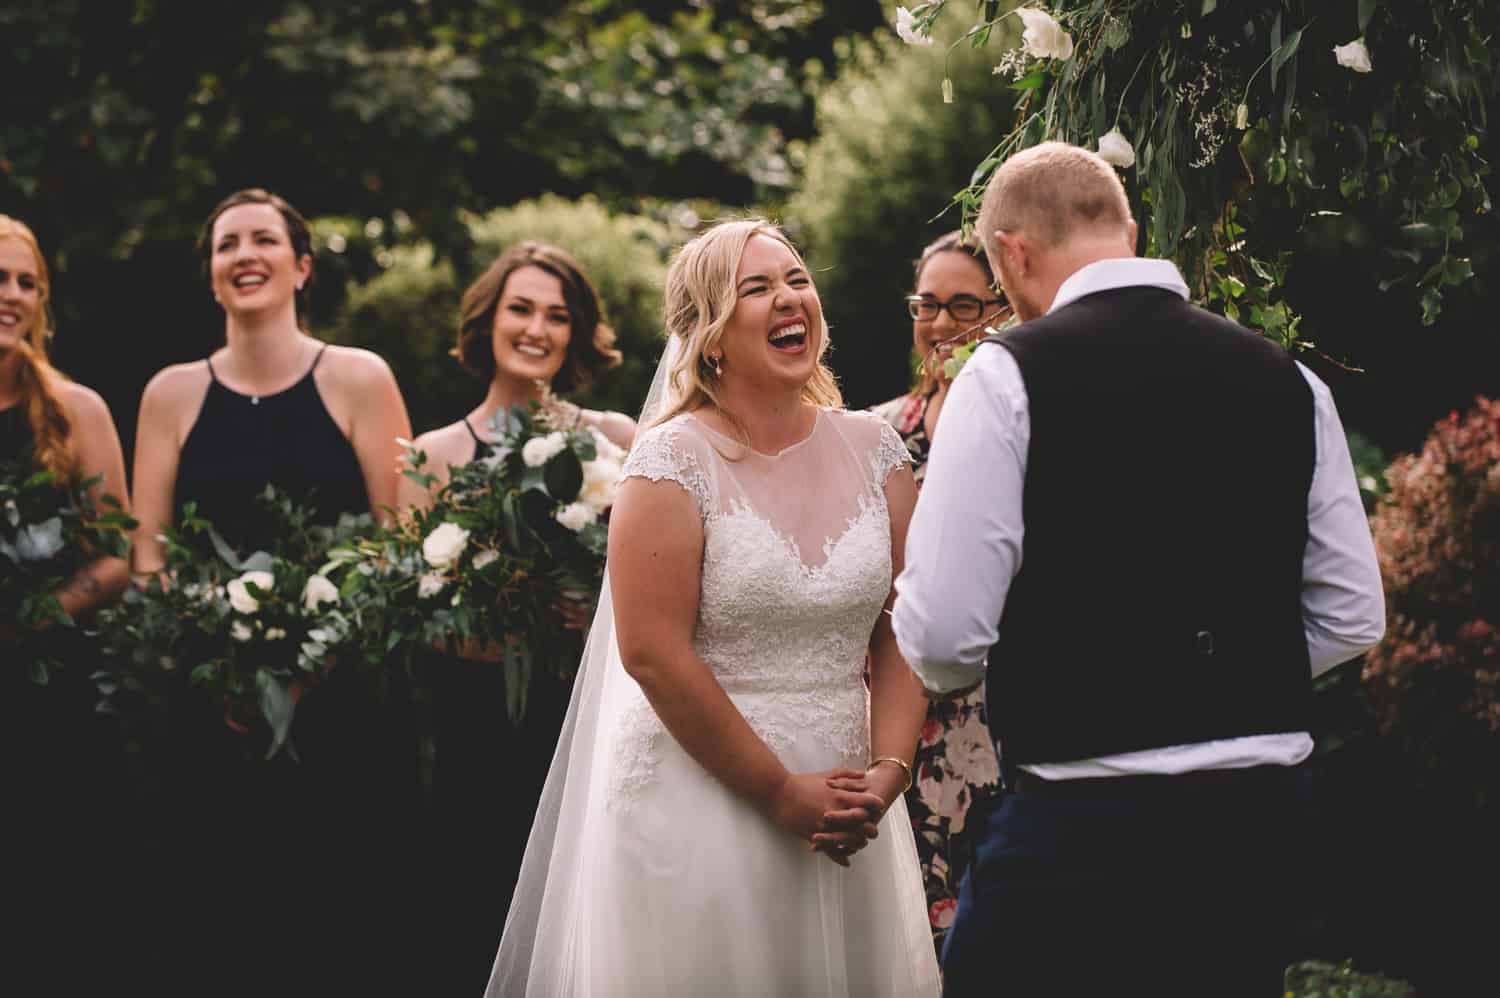 blog post wedding day timeline nz relaxed Winehouse Wedding Dayna Nathan Fallon Photography